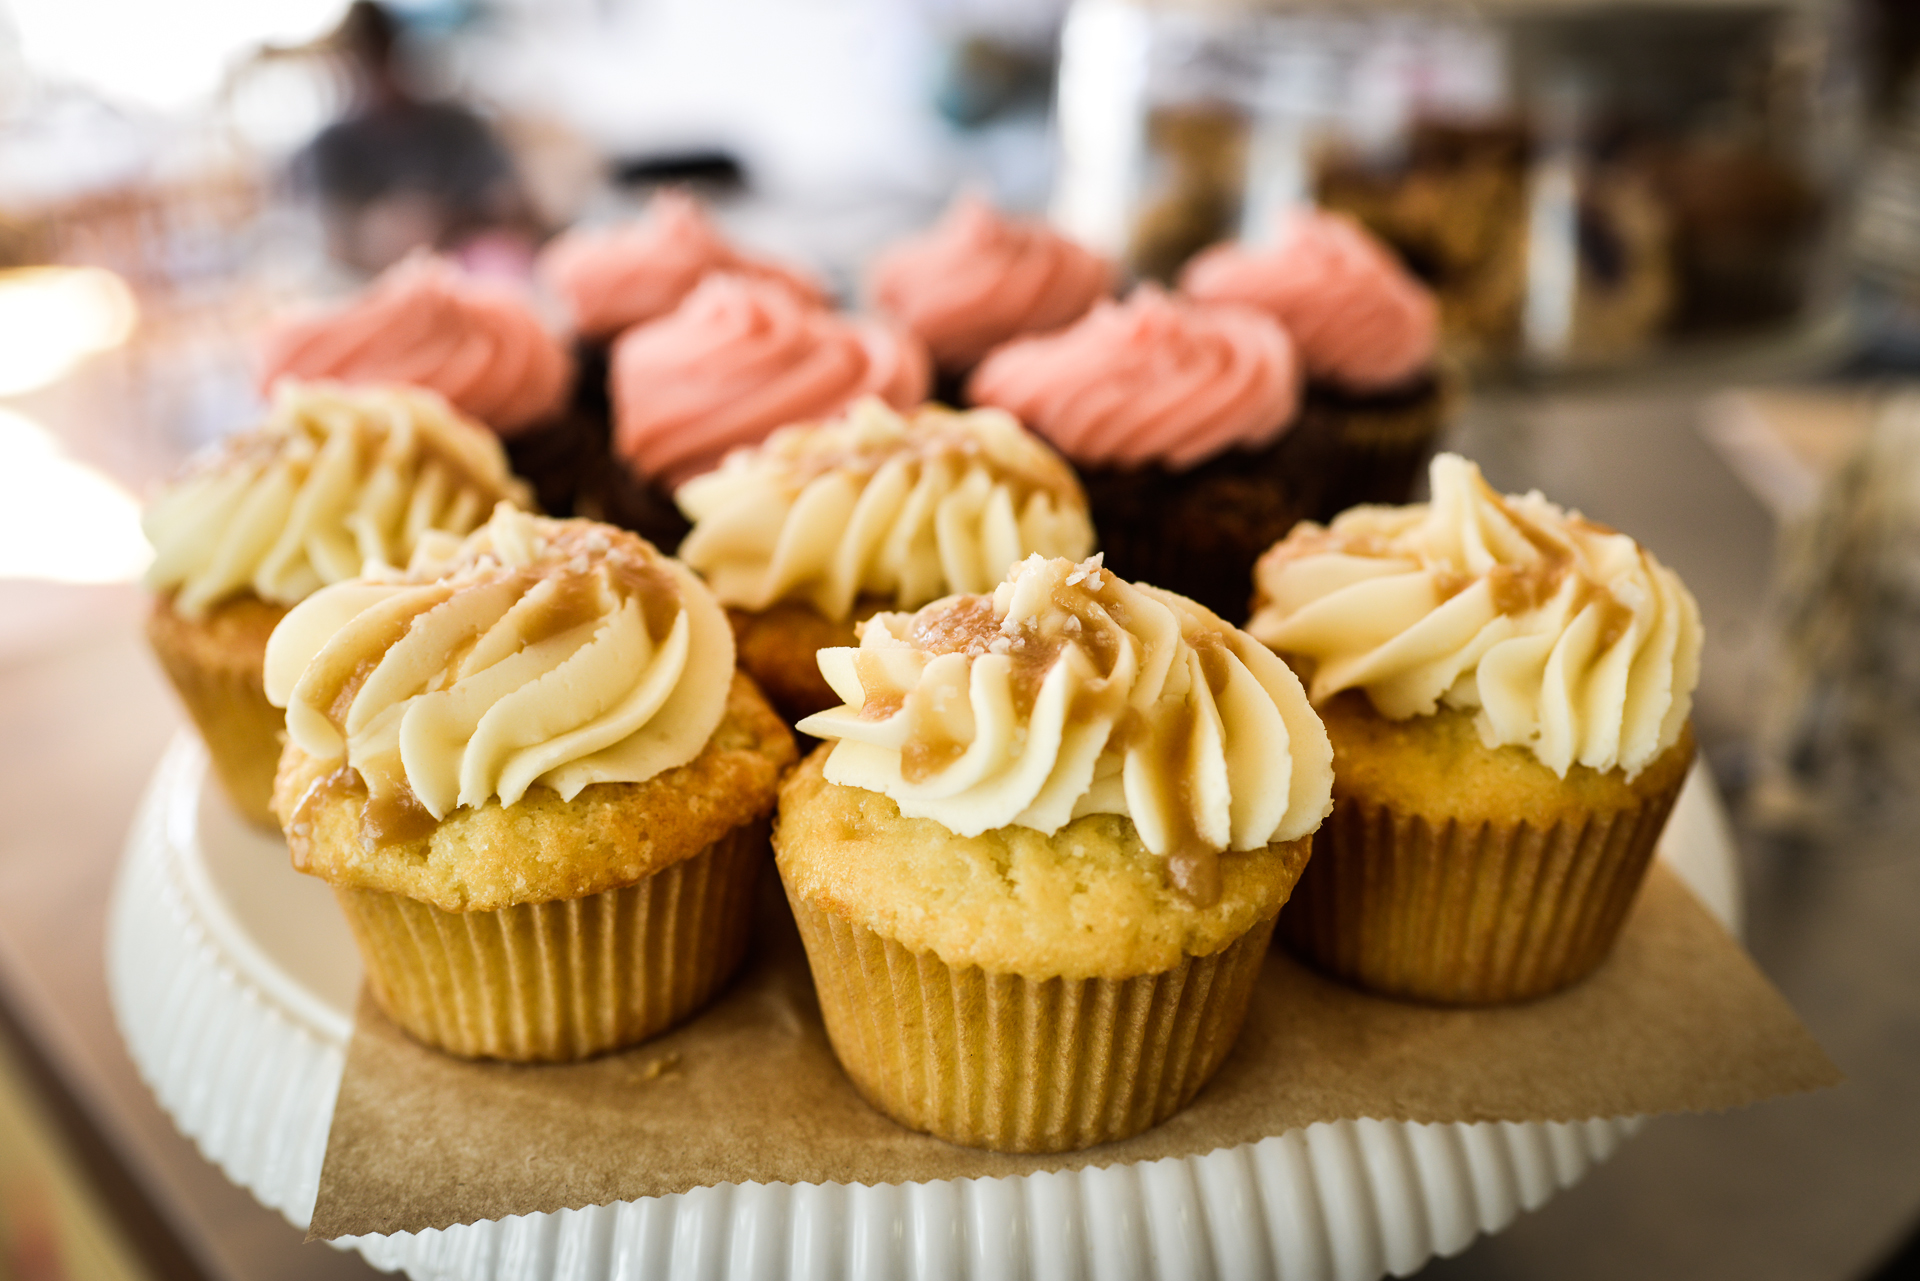 Whisk Cupcakes in St. Louis, MO